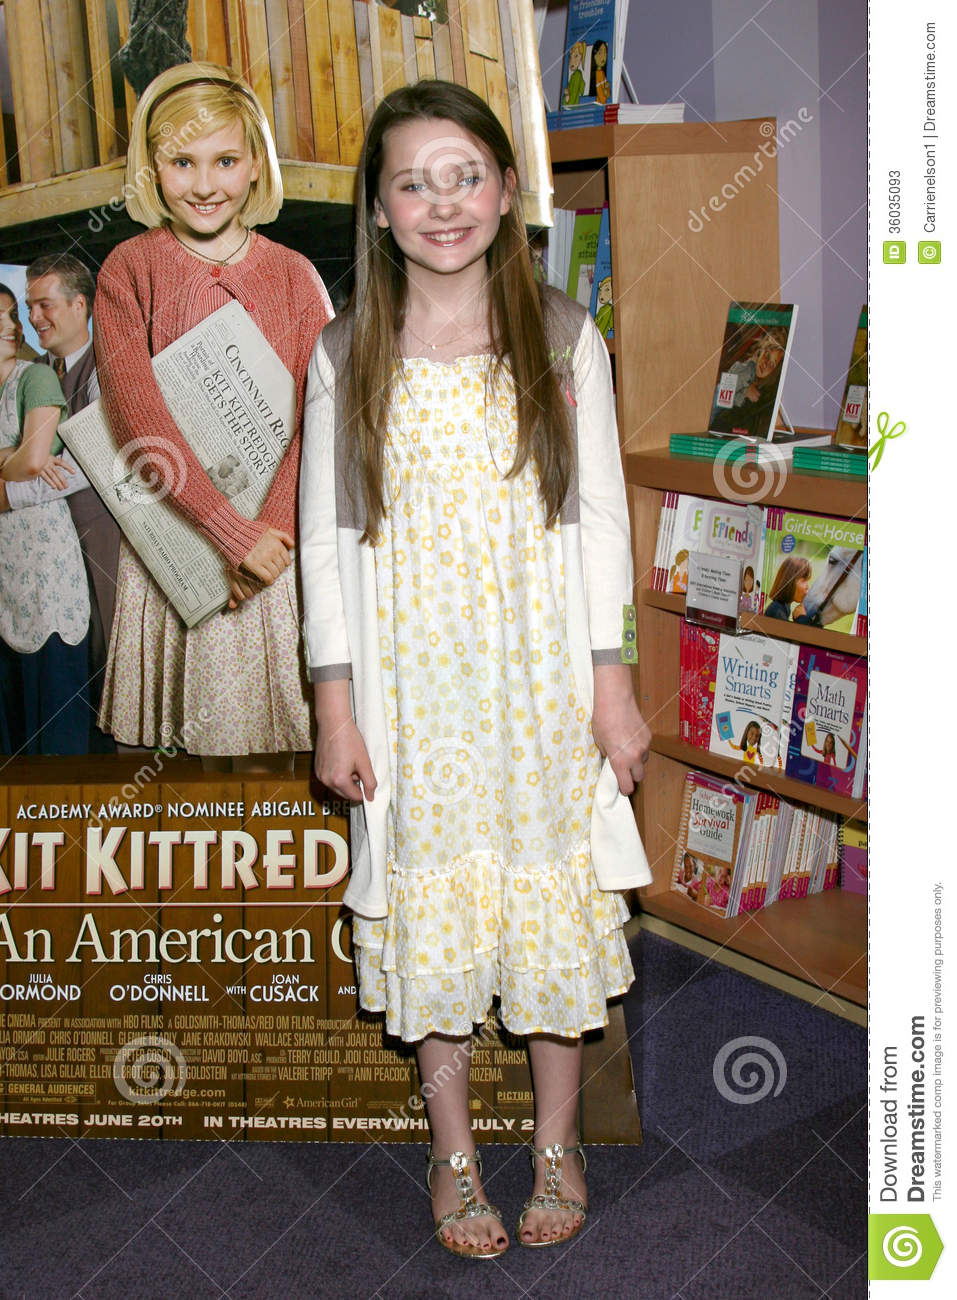 kittredge girls Watch kit kittredge: an american girl movie trailers, exclusive videos, interviews from the cast, movie clips and more at tvguidecom.